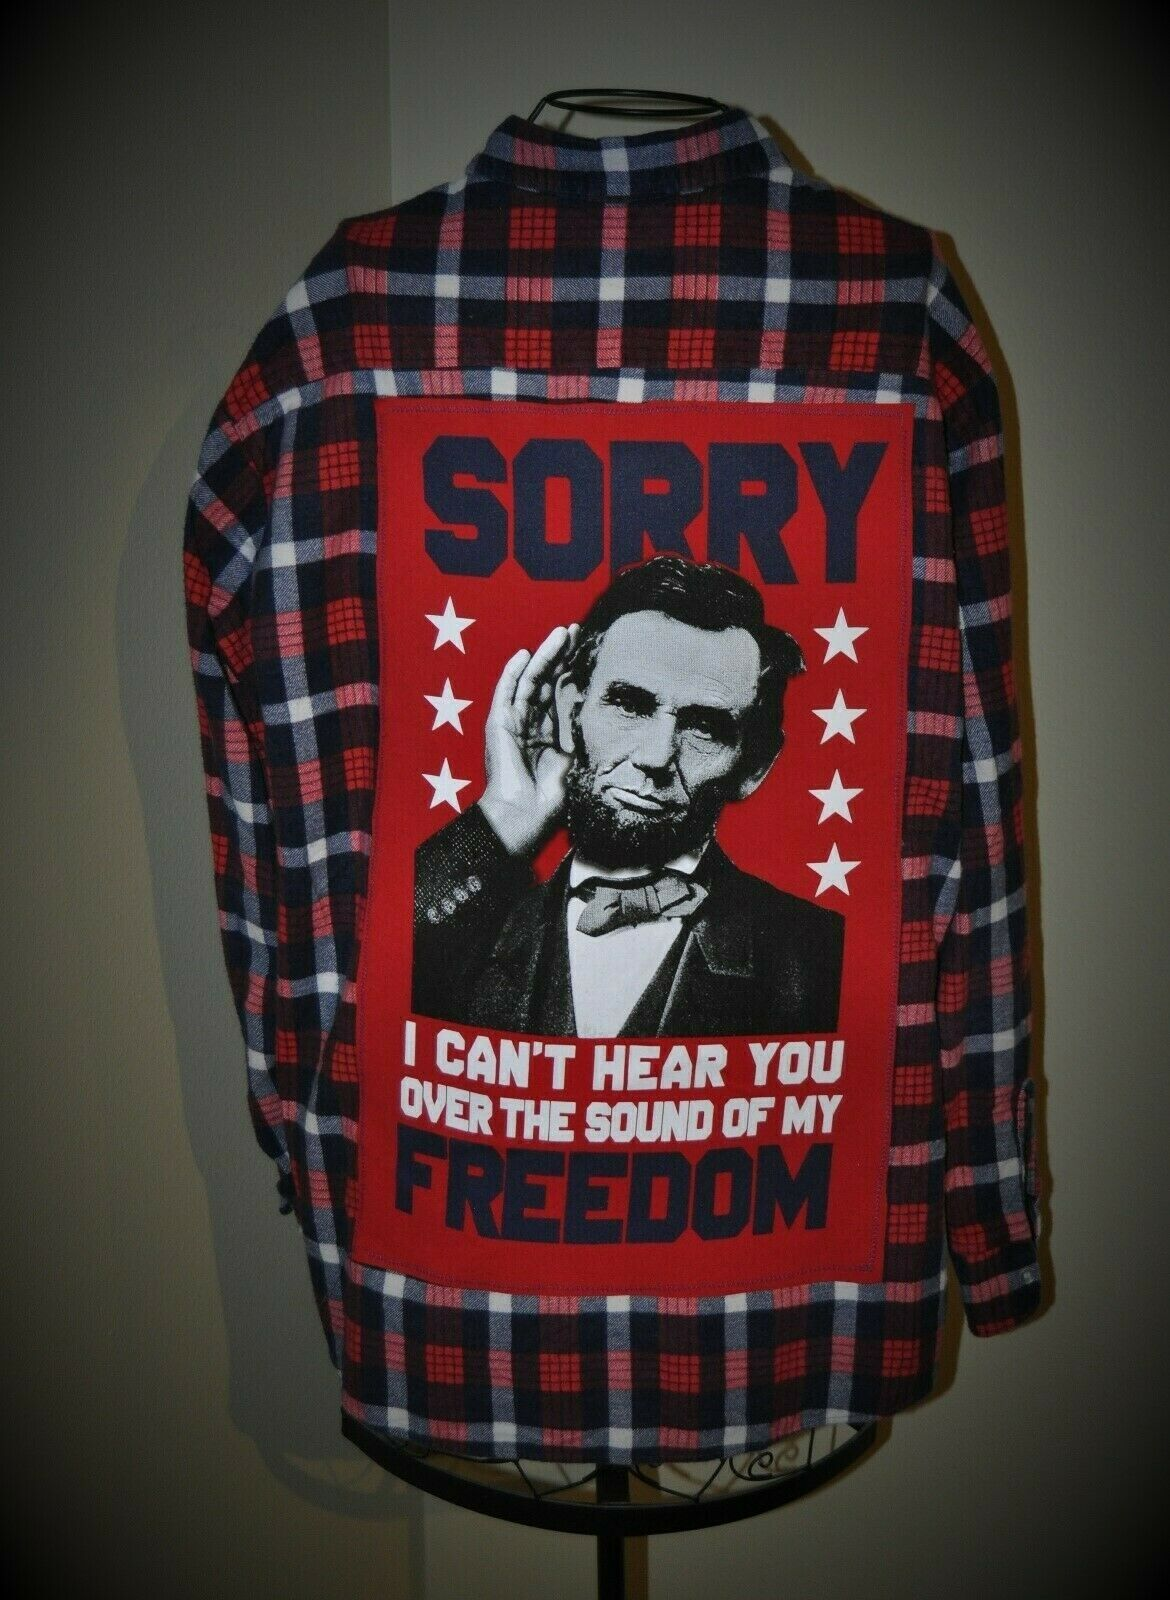 Shirt xlarge abraham lincoln sound of freedom republican 24.5 inches pit 2 pit